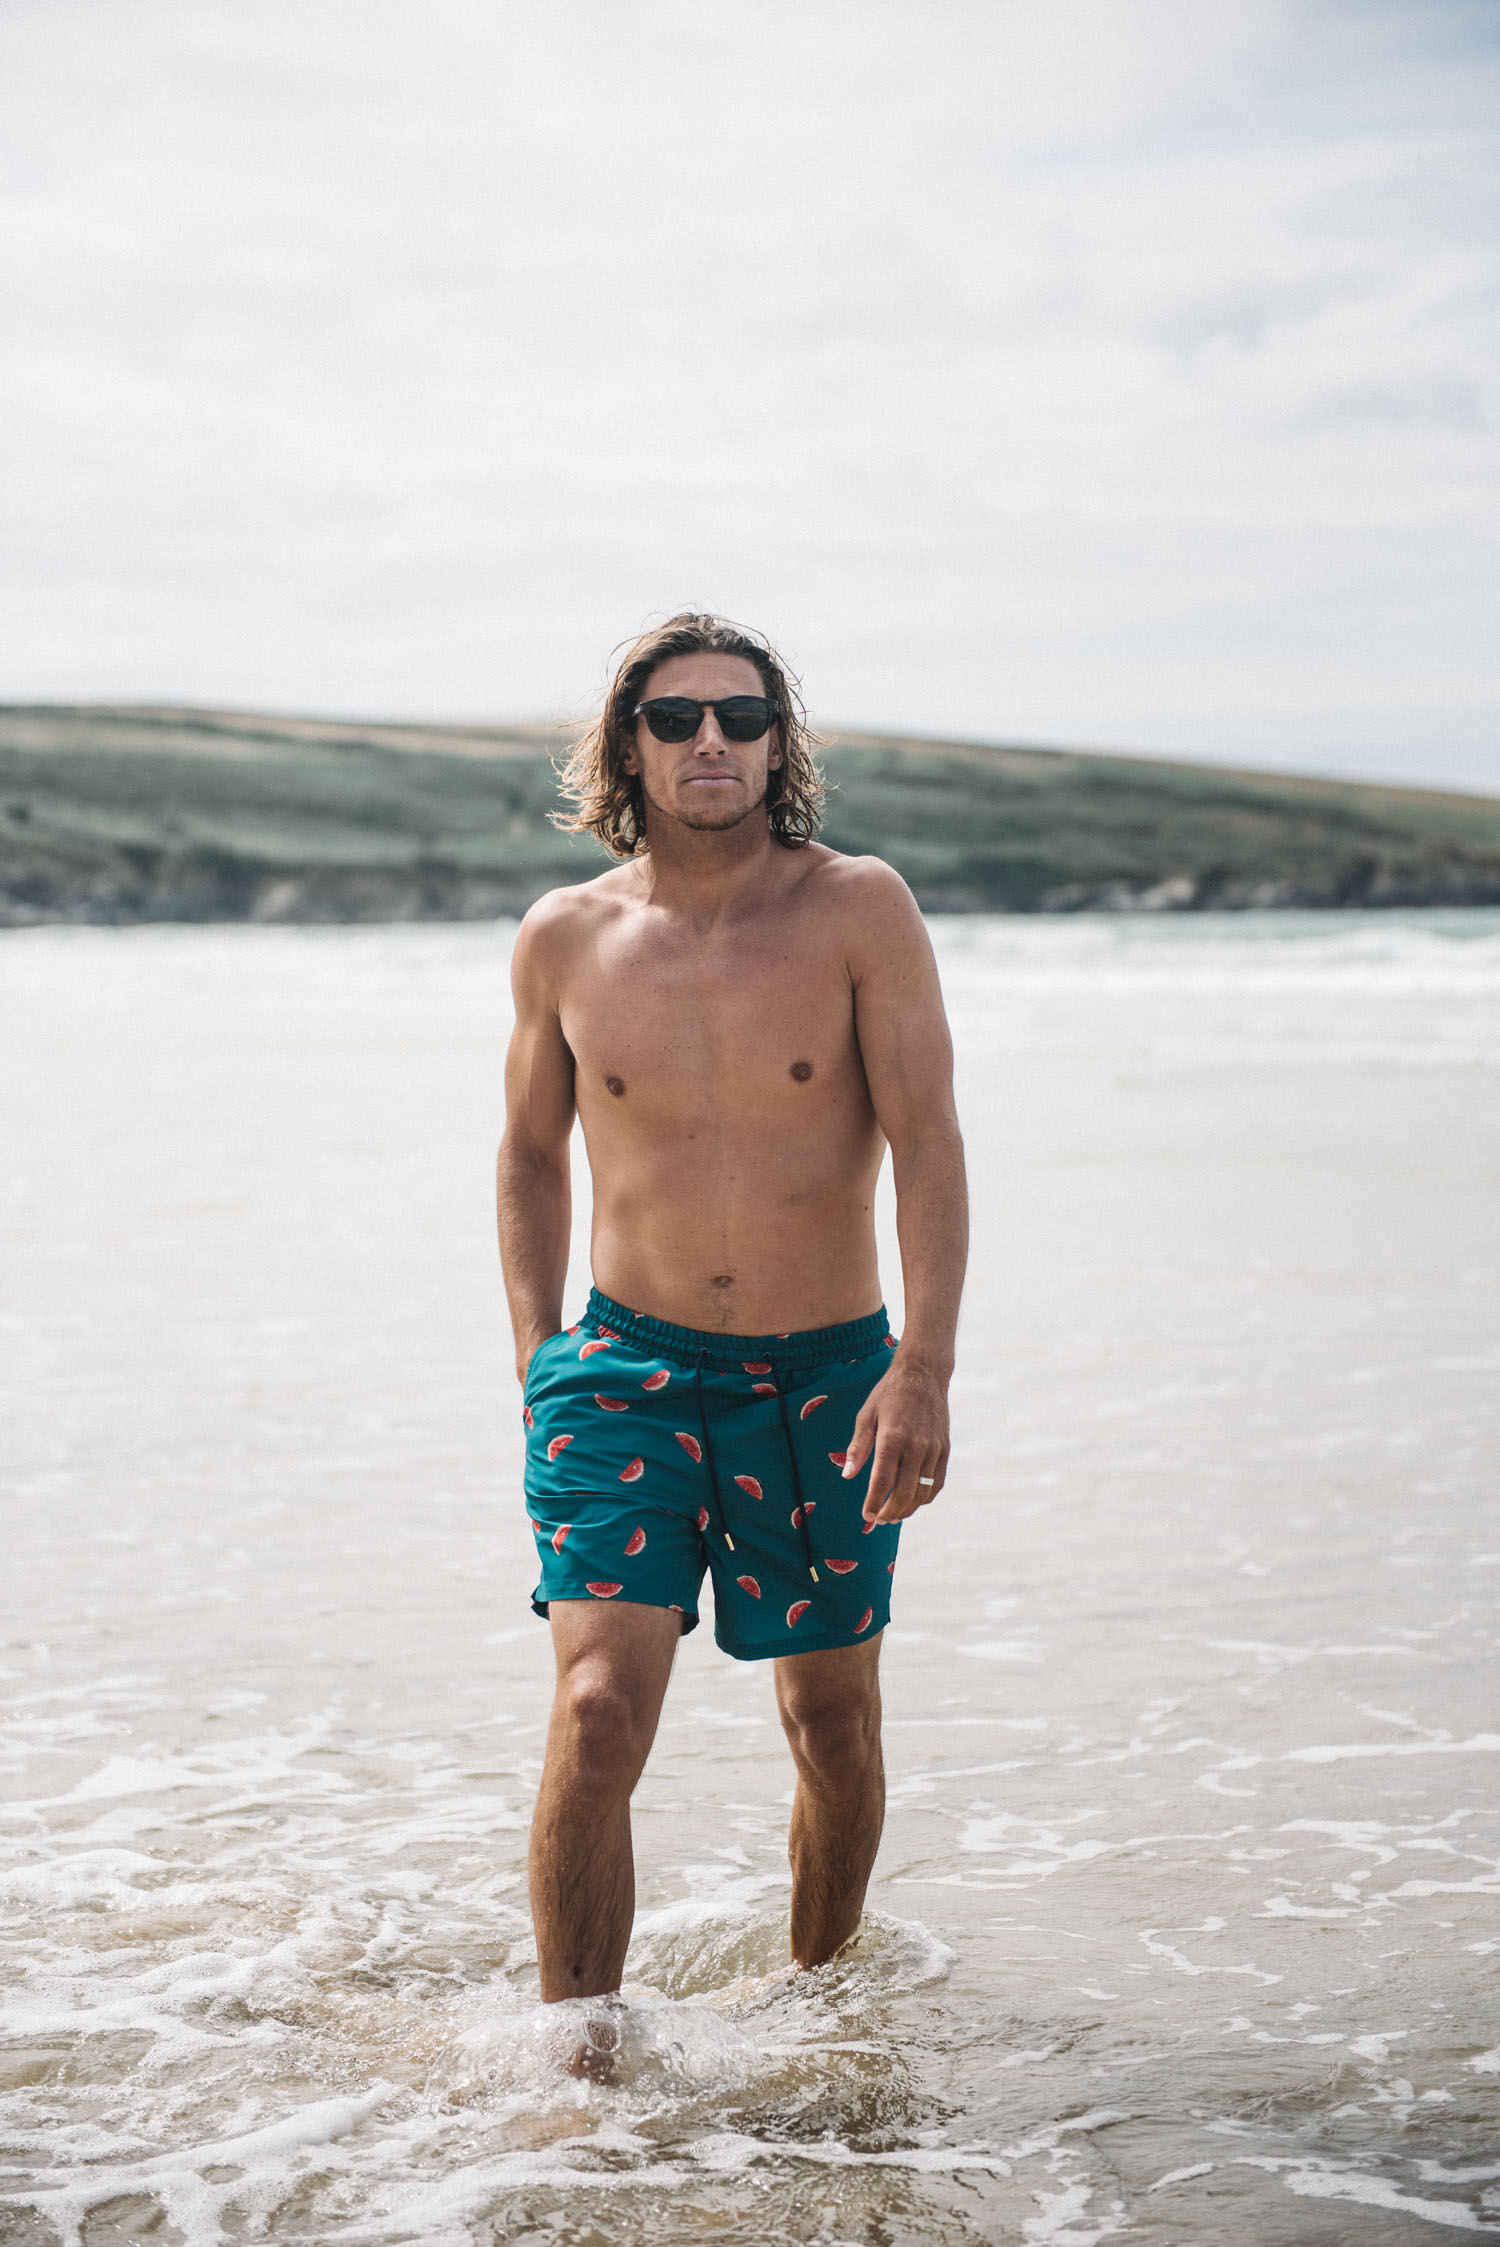 Shooting for Mangata London in Newquay // www.oliviabossert.com // surf photoshoot, menswear photoshoot, mens swimwear photoshoot, surfer, alan stokes, cornwall photoshoot, cornwall beach, male model, uk photographer, uk fashion photographer, cornwall photographer